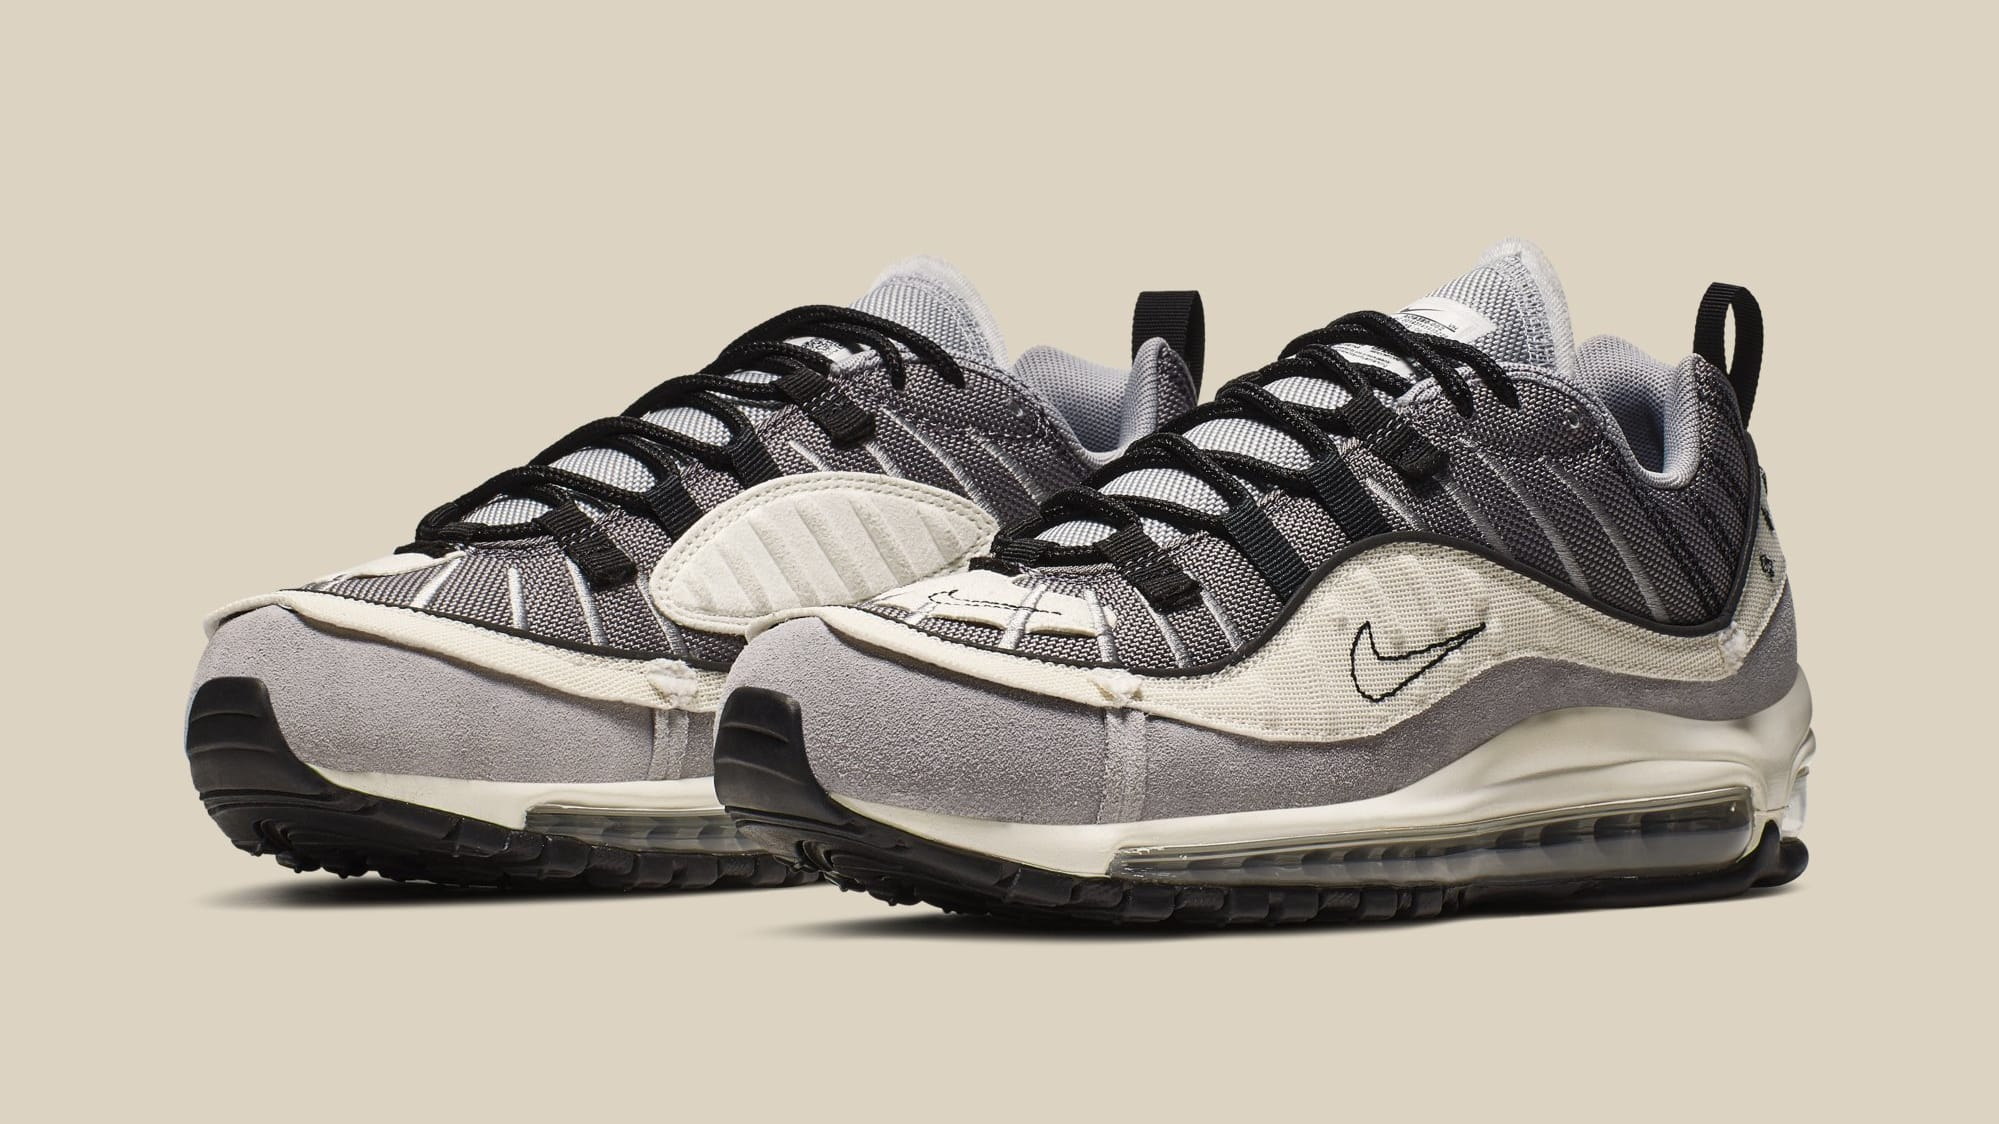 Nike Air Max 98 'Inside Out' AO9380-002 (Pair)